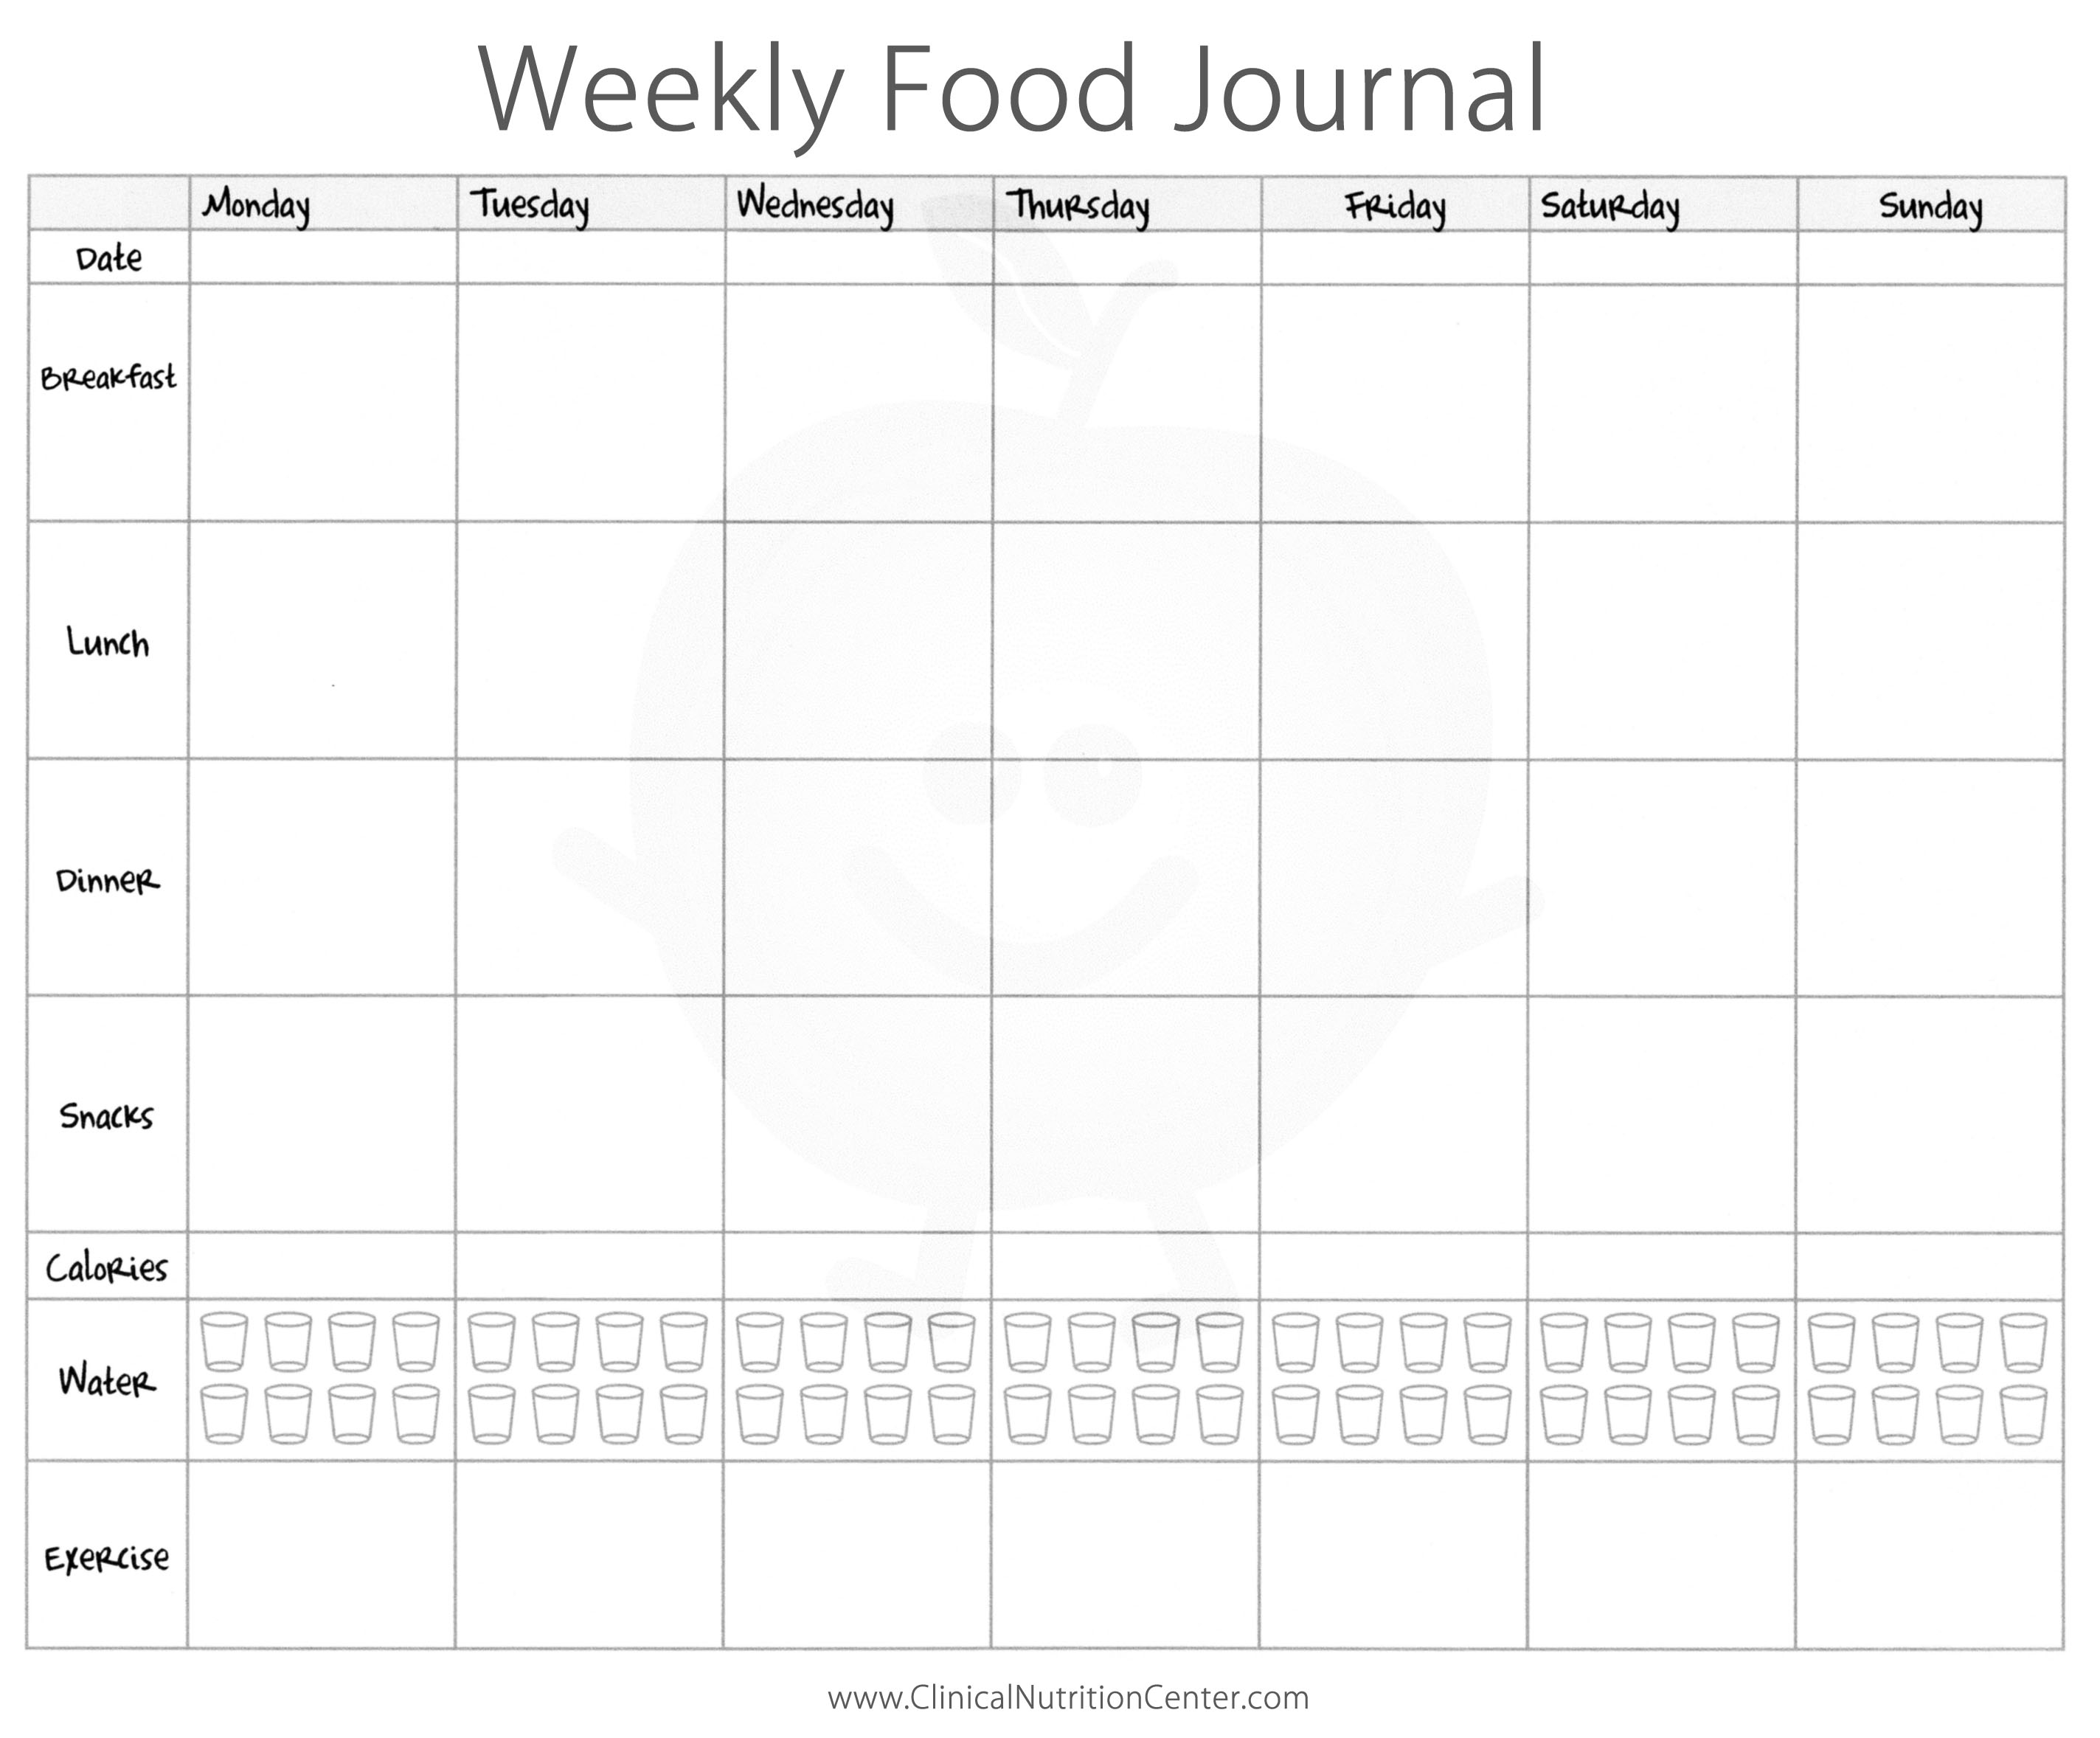 8 Best Images of Weekly Food Journal Printable Worksheet - Journal ...